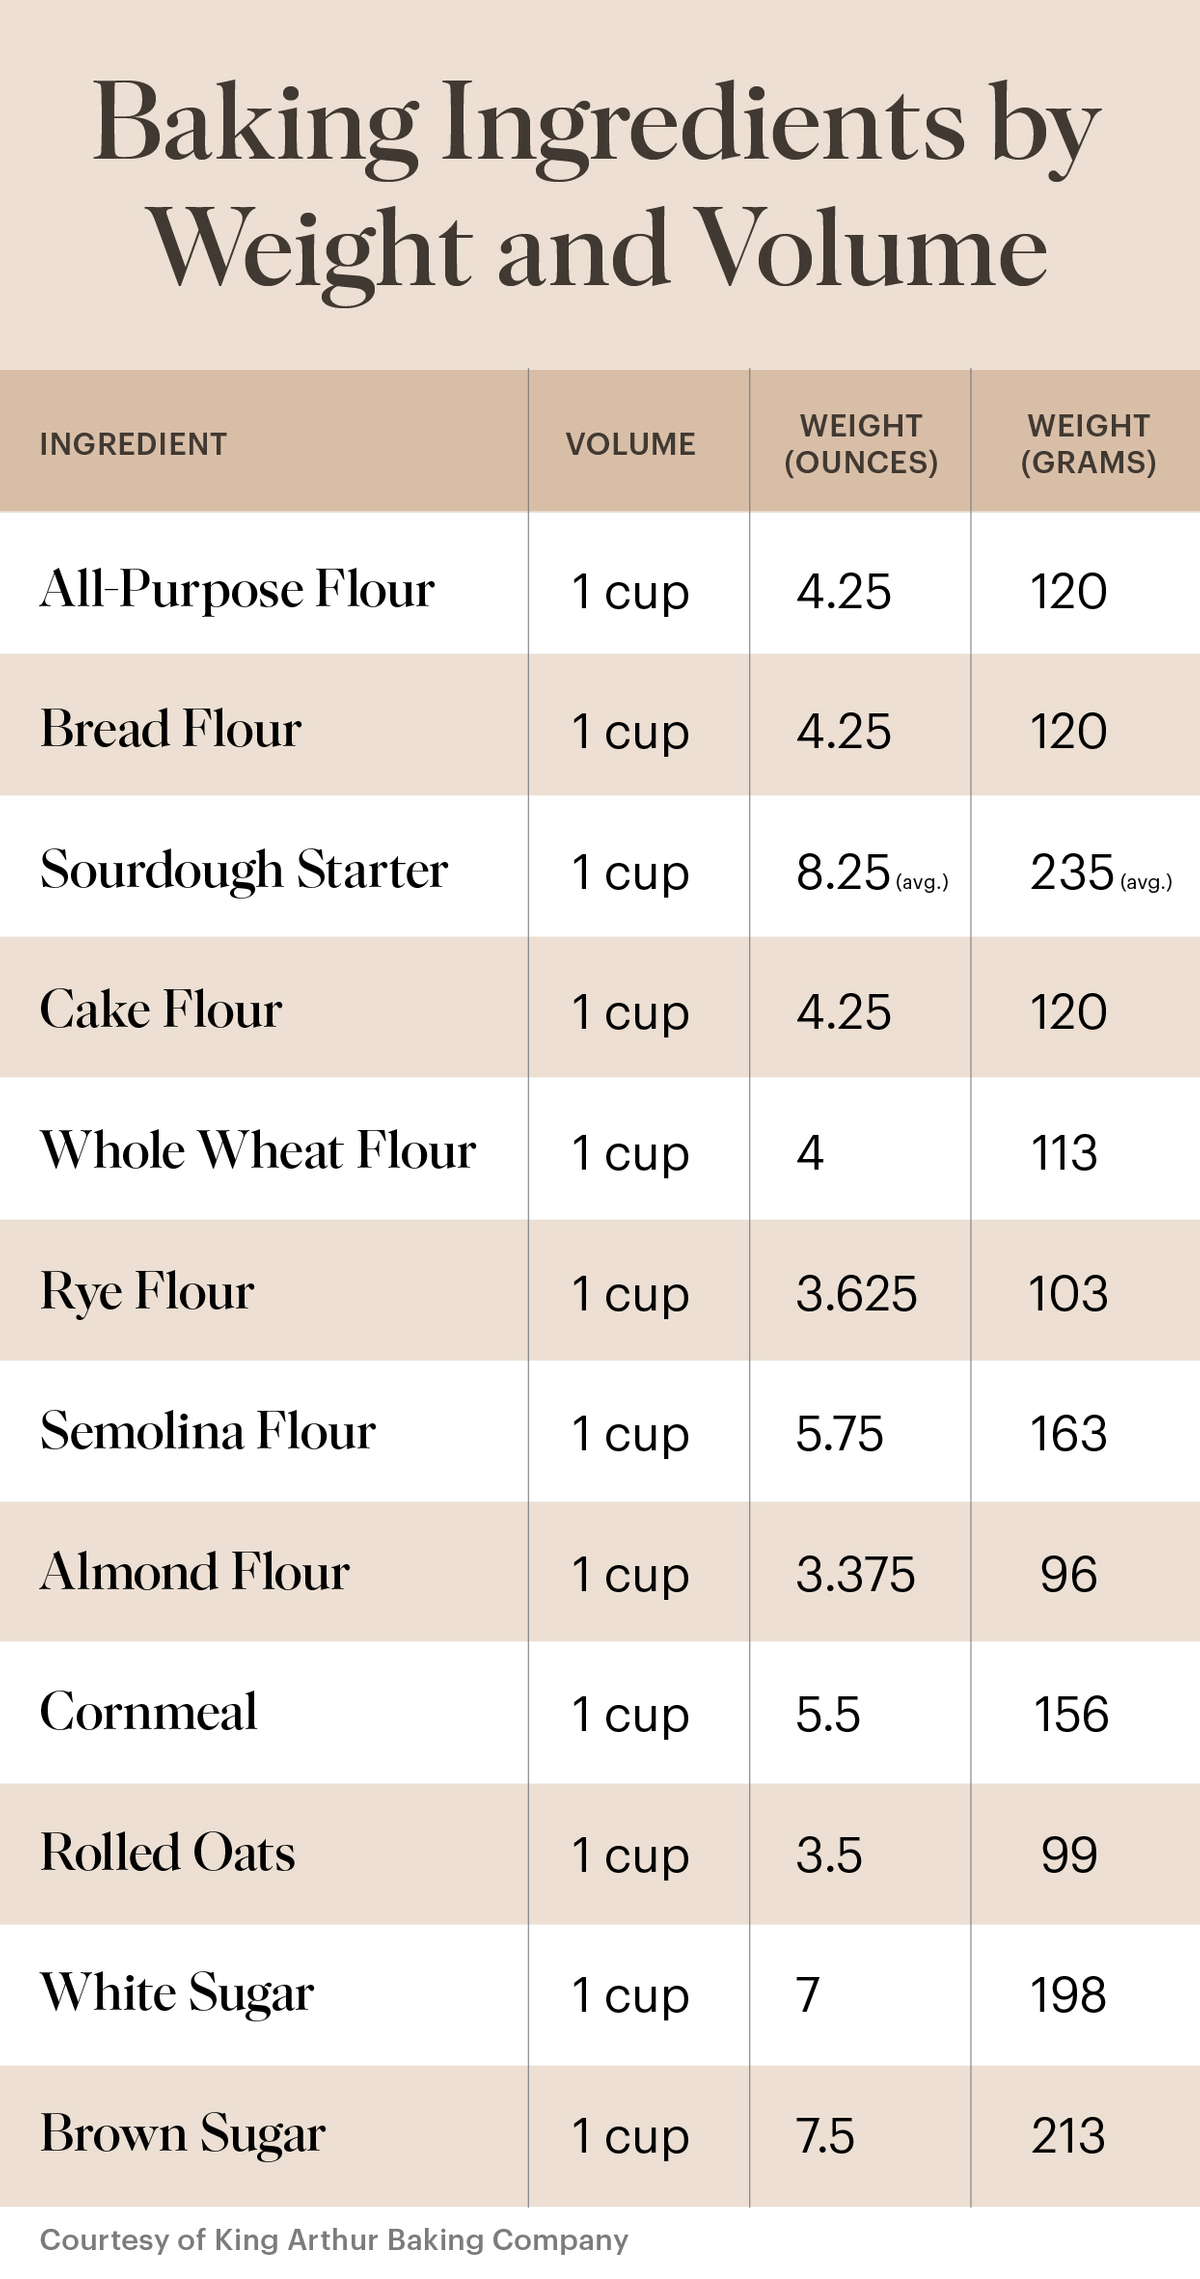 a chart that shows baking ingredients, such as different flours, by weight in ounces and grams and volume in cups